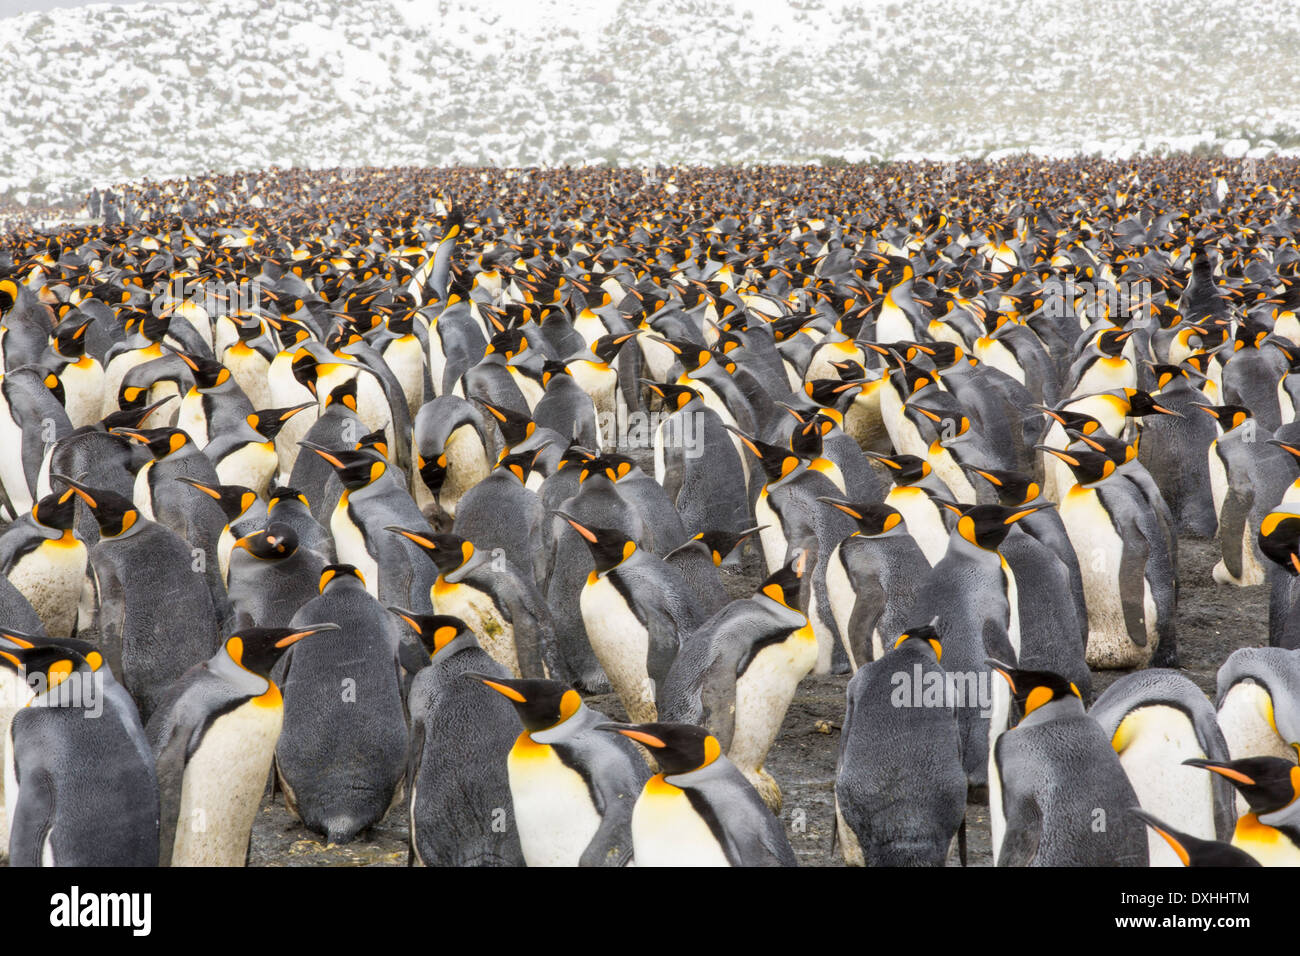 King Penguins on the beach at Gold Harbour on South Georgia, Southern Ocean. - Stock Image